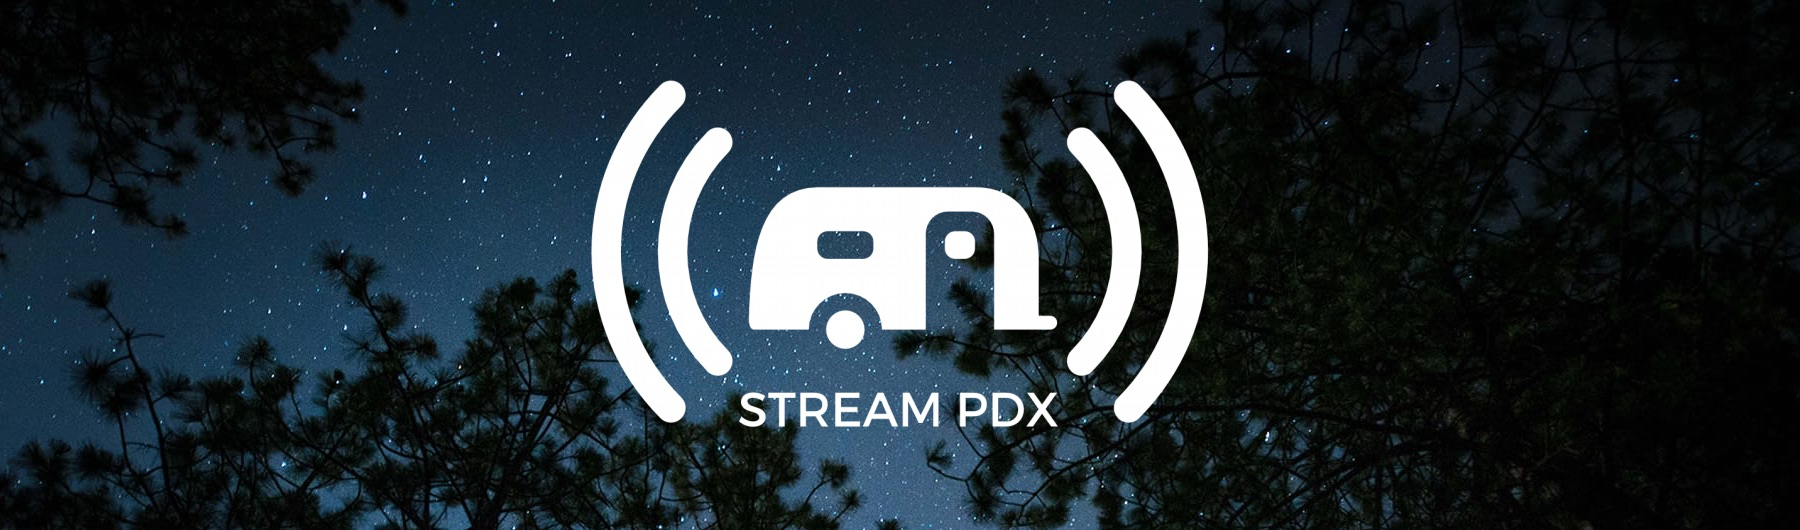 Monthly Stream PDX Meetup - December 1 at 6:00 PM